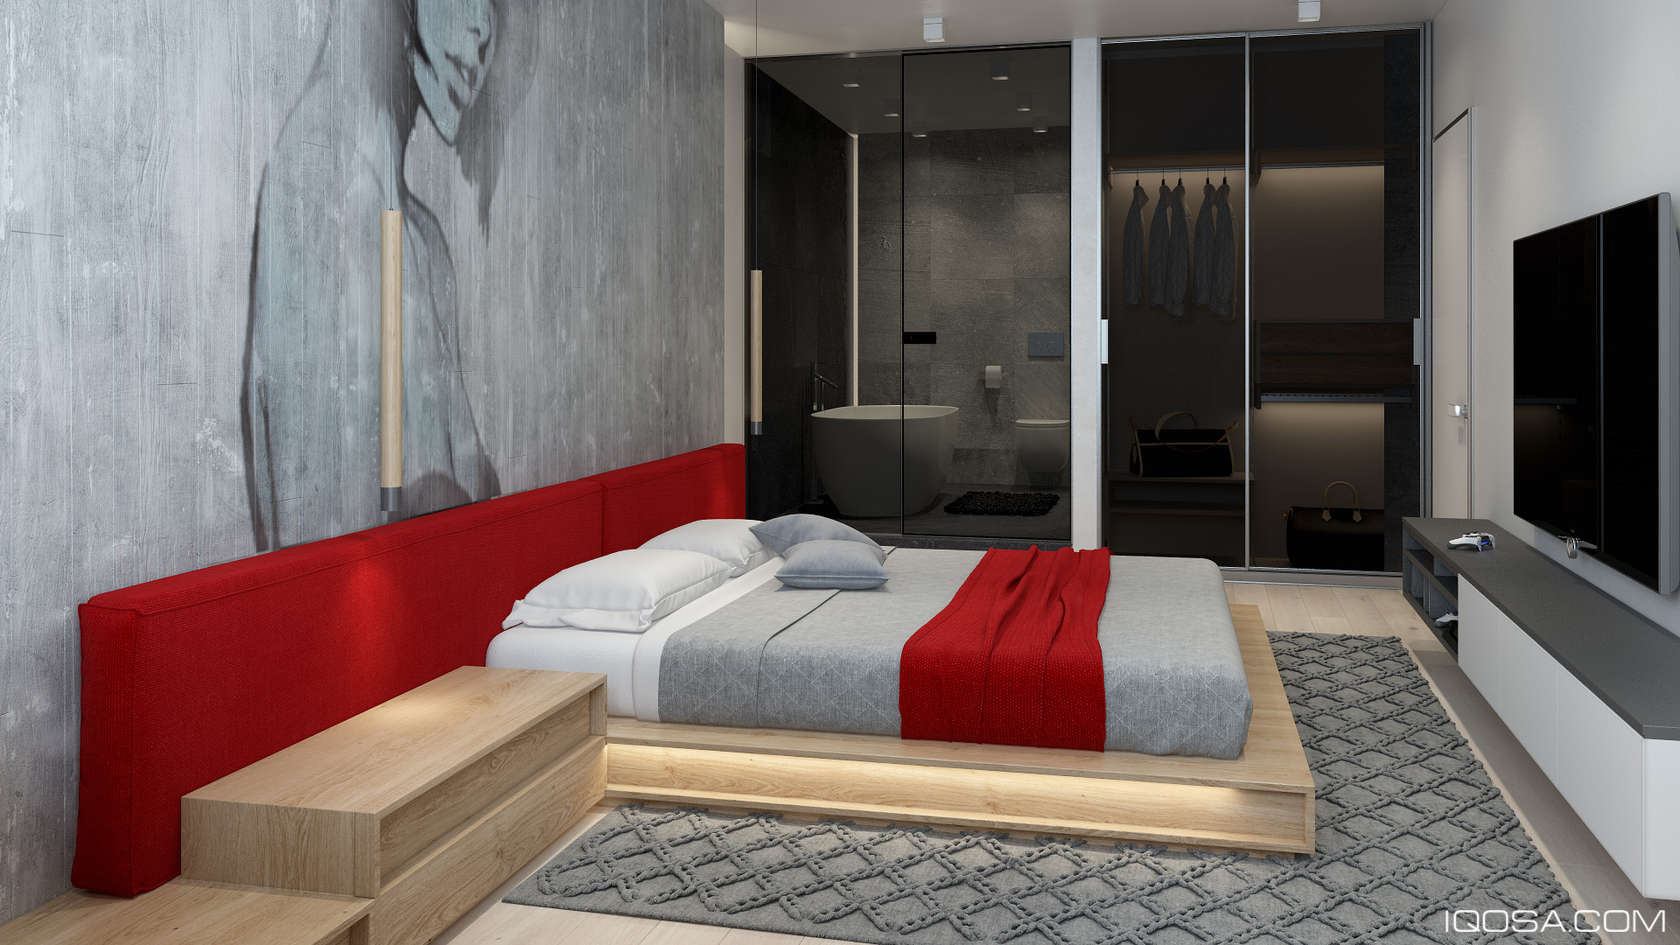 Modern Platform Bed Idea - An approachable take on luxury apartment design